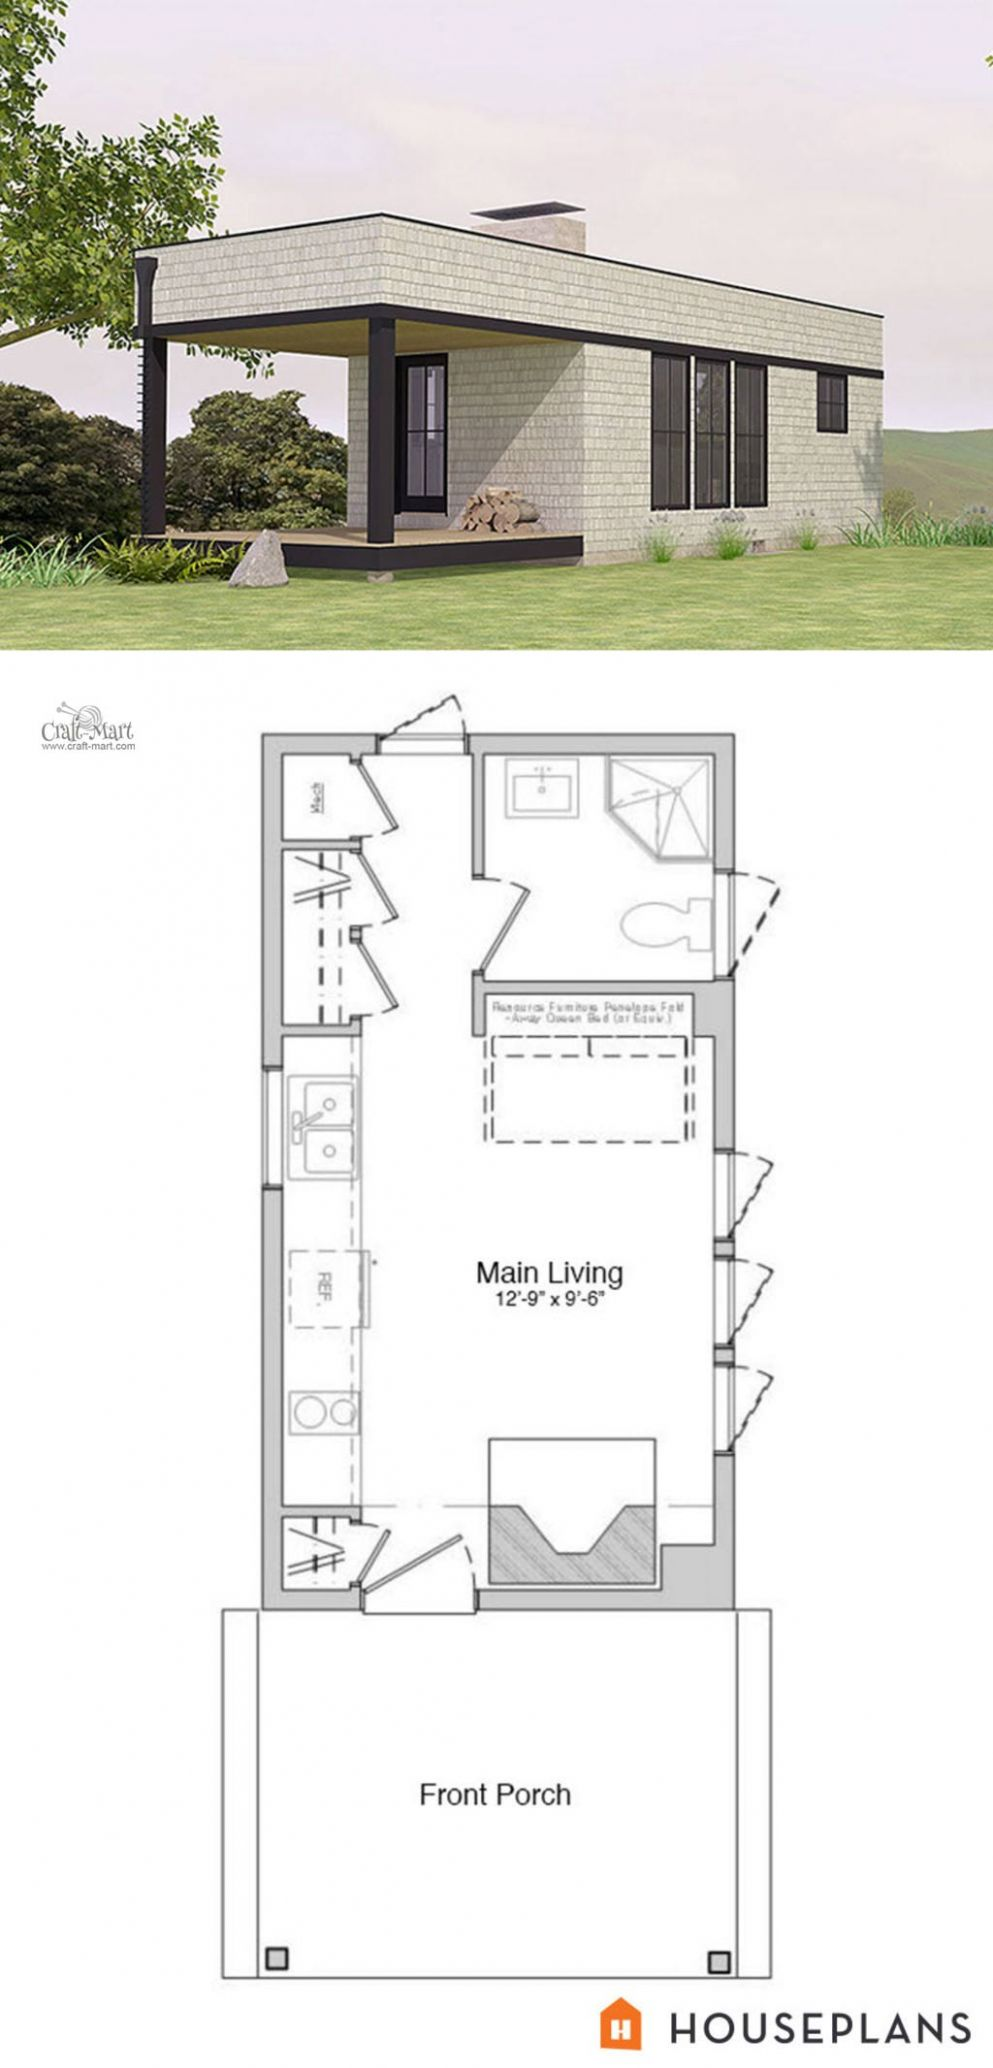 8 Adorable Free Tiny House Floor Plans - Craft-Mart - tiny house plans free